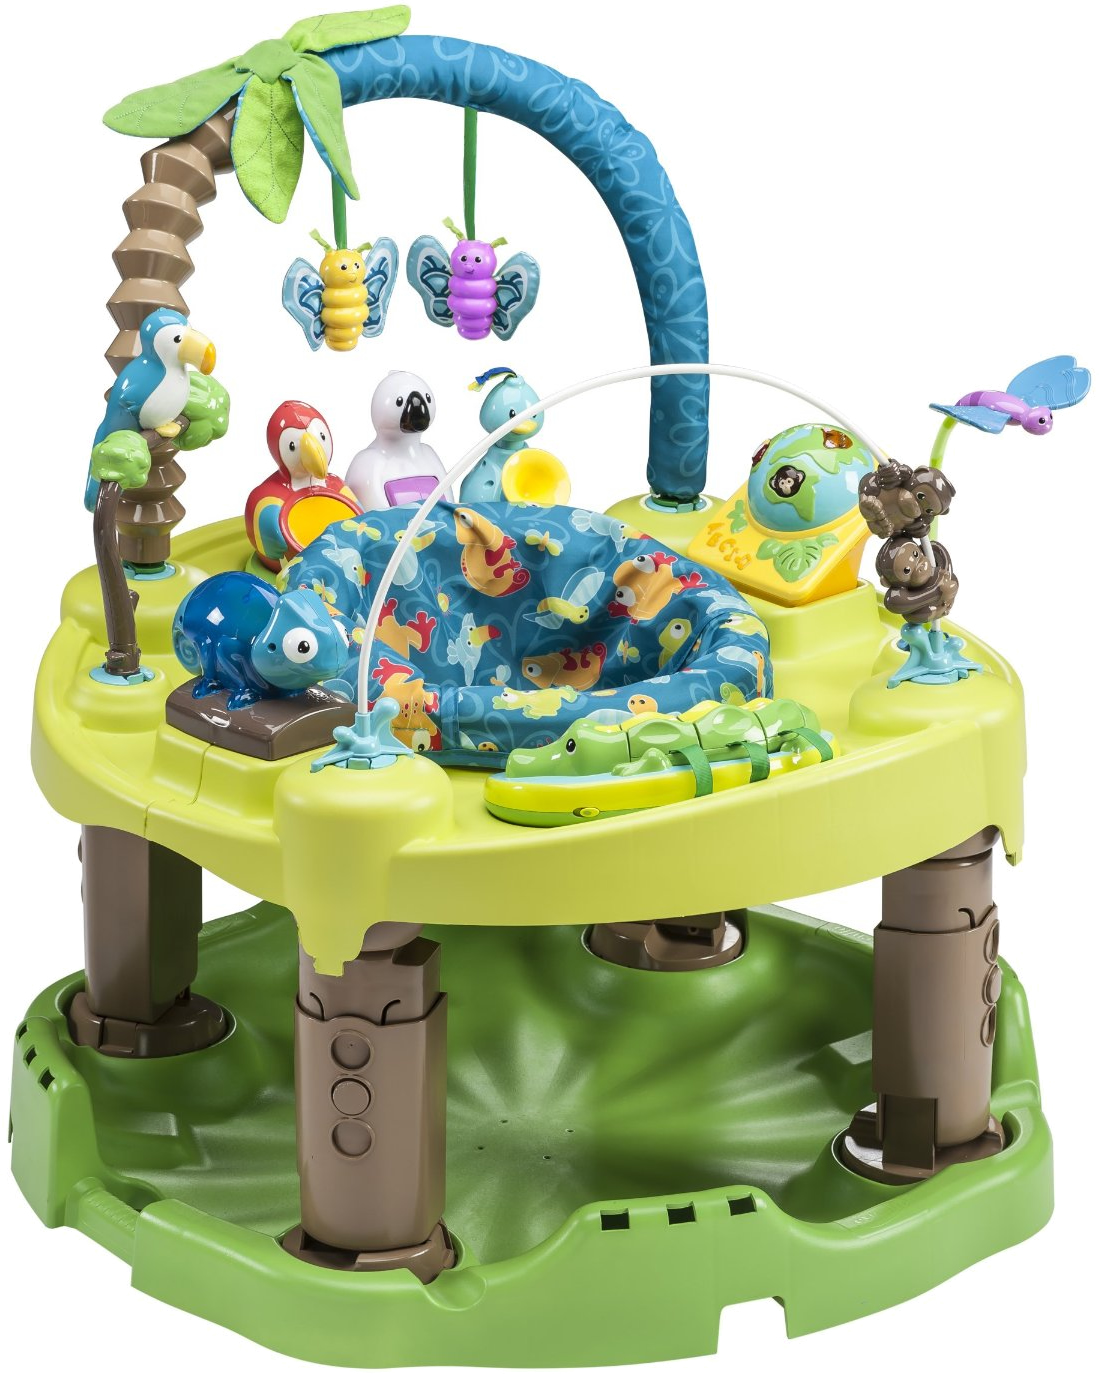 Evenflo Triple Fun Jungle Exersaucer Talking Alligator Toy Replacement Part